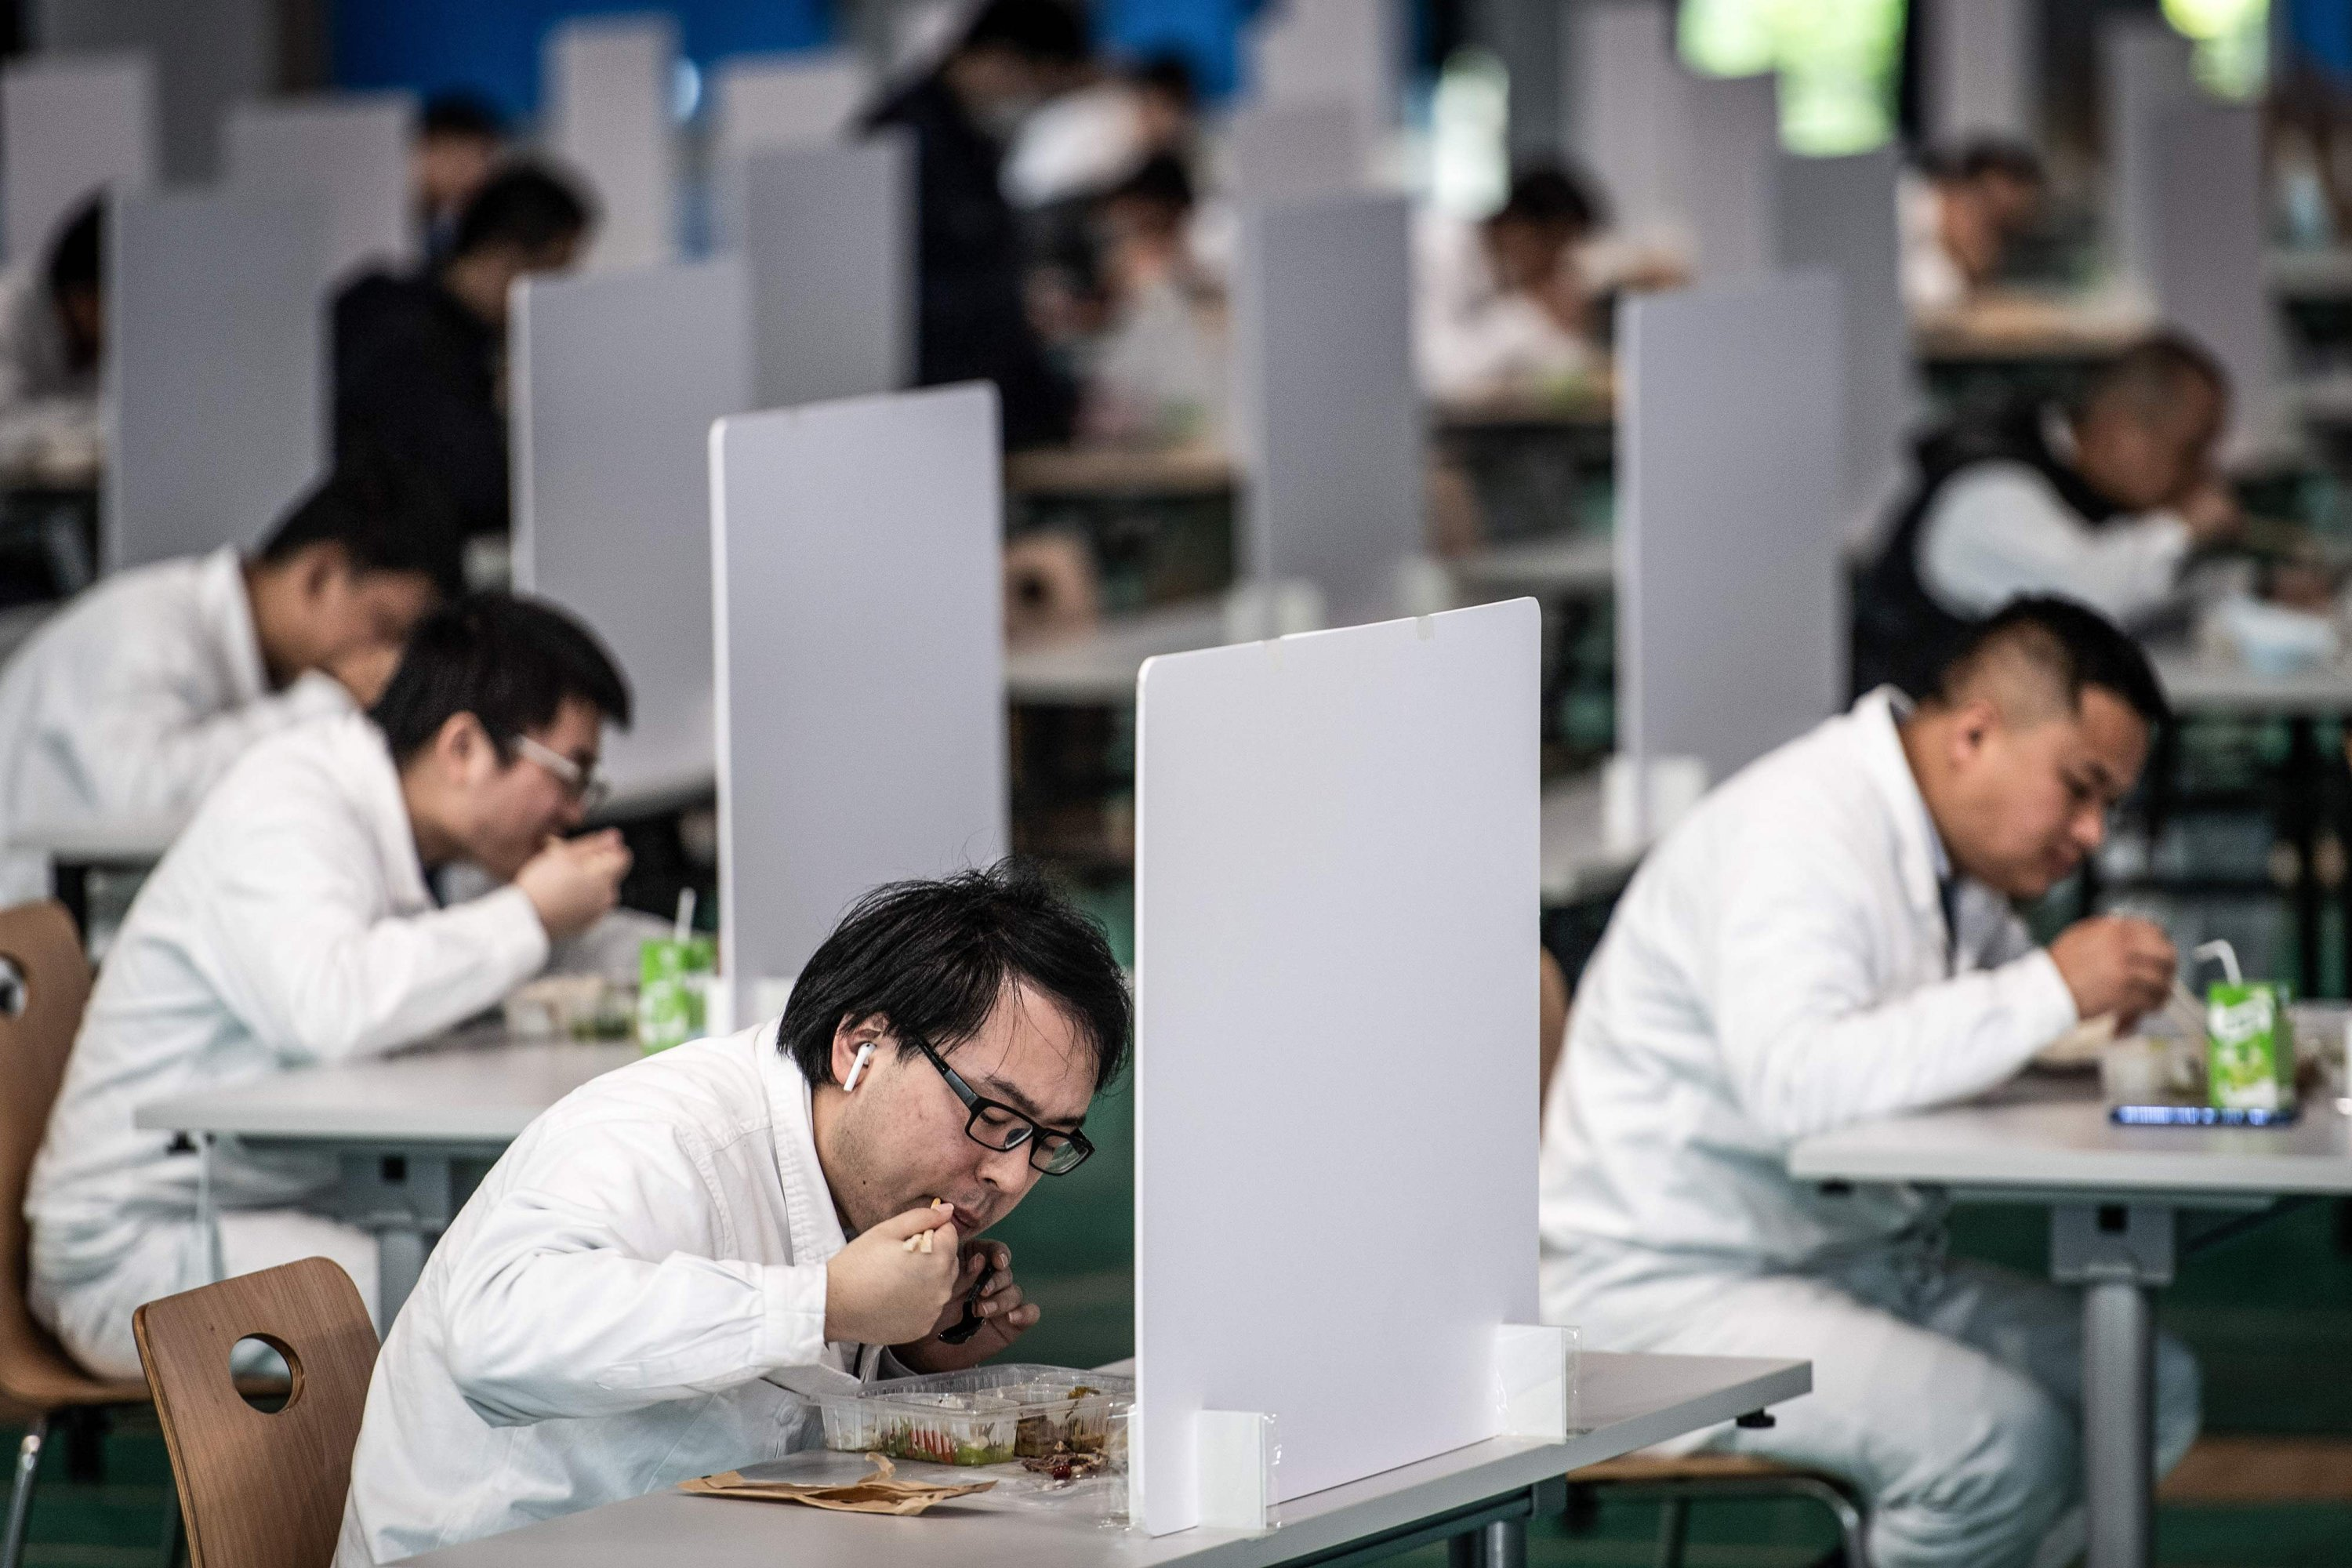 Employees eat during a lunch break at a Dongfeng Honda auto plant in Wuhan, Hubei province, China on Tuesday, April 7, 2020. (AFP Photo)